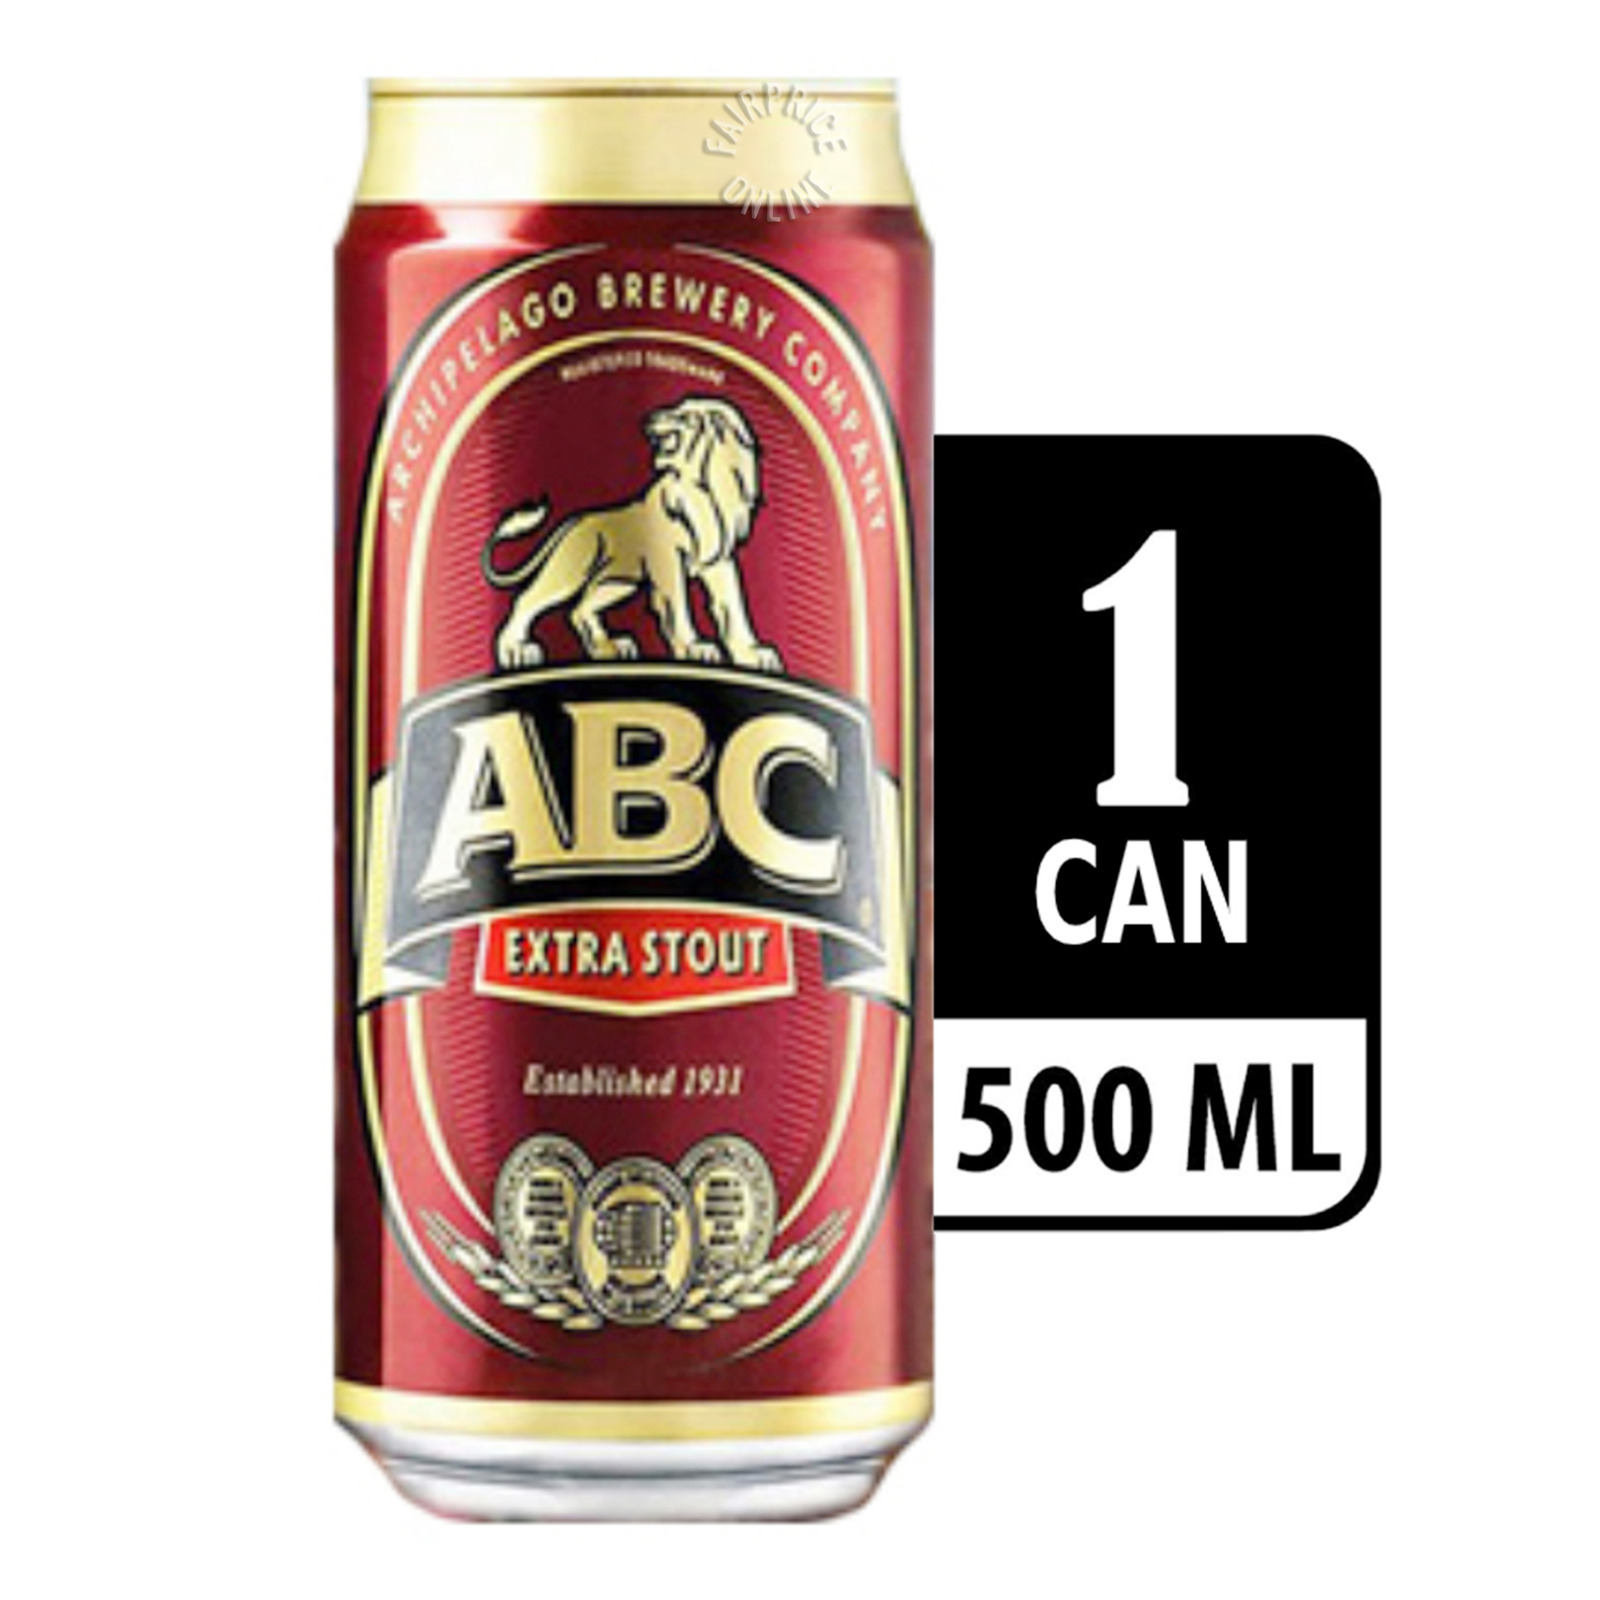 ABC Extra Stout ALC6% 500ML